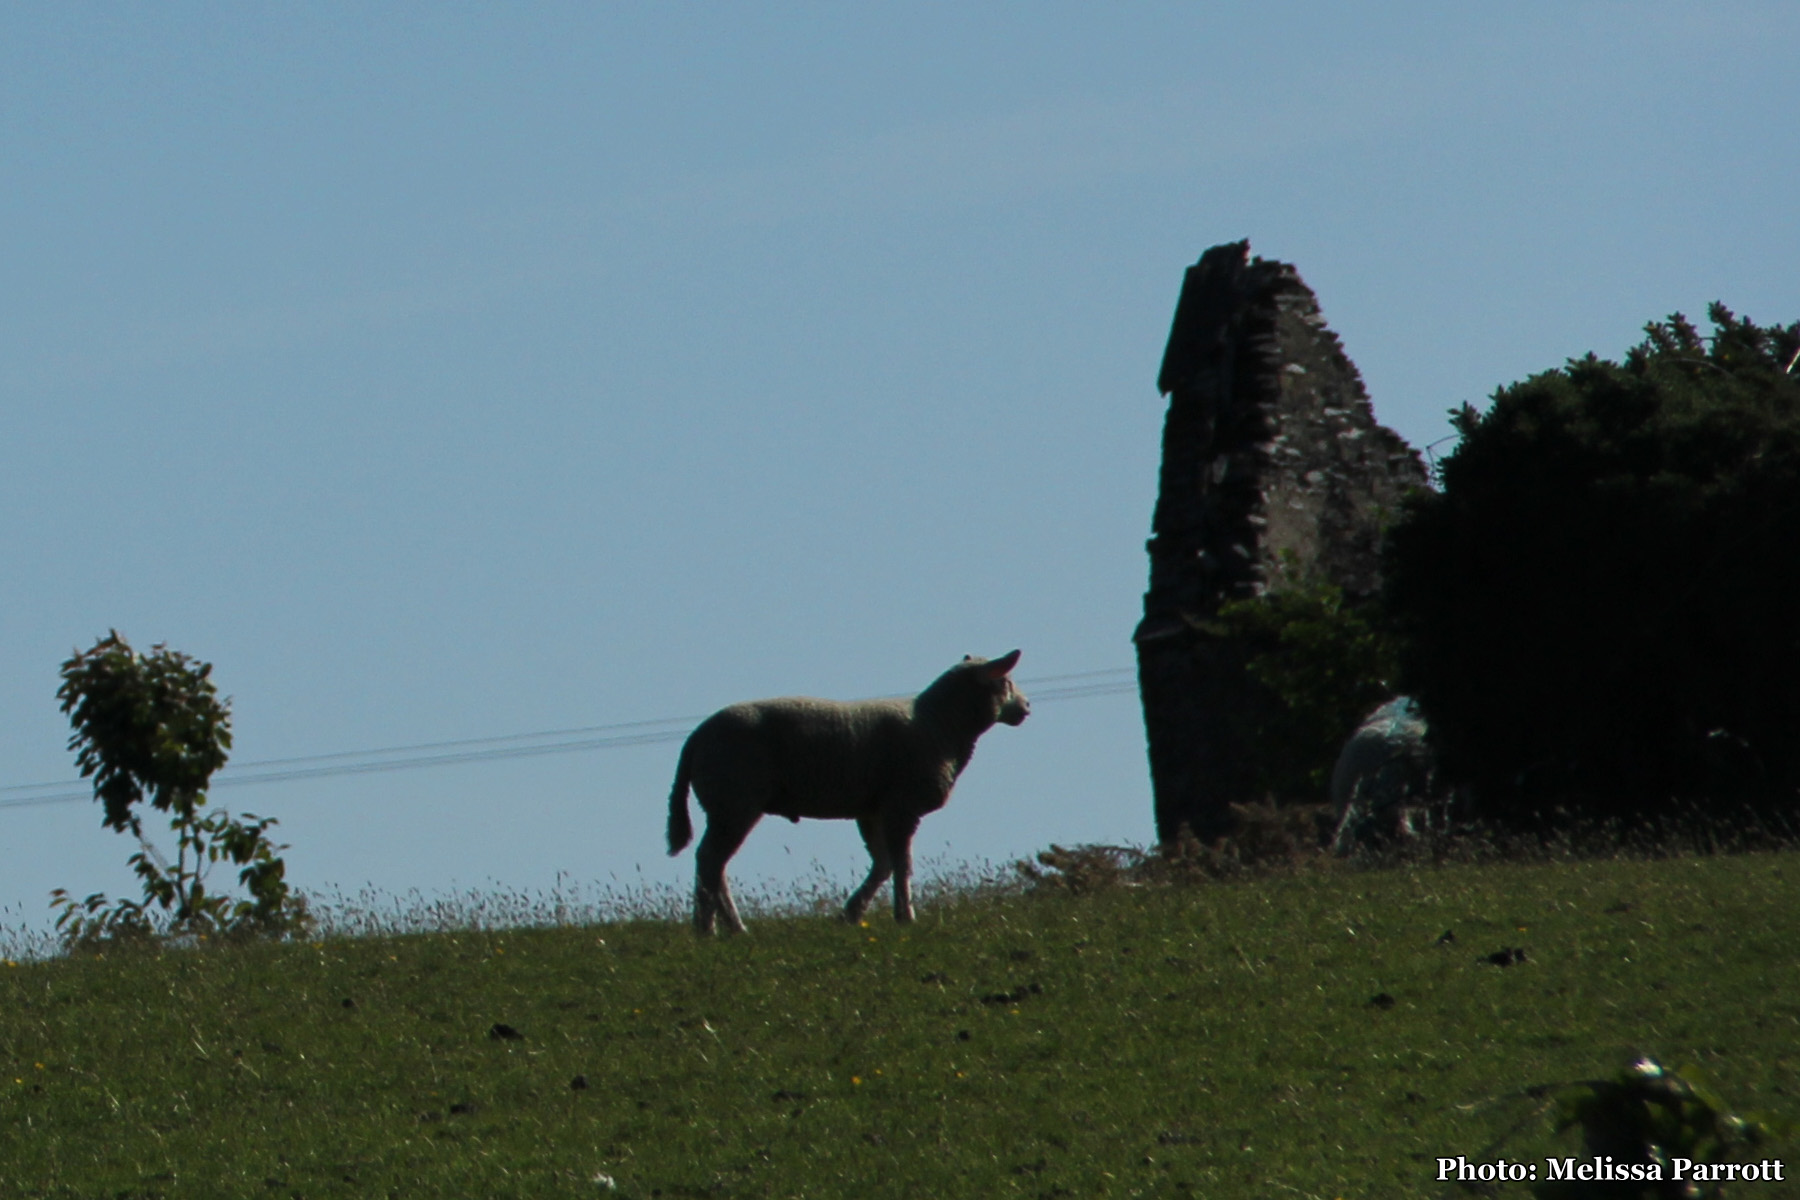 Sheep grazing near ruins